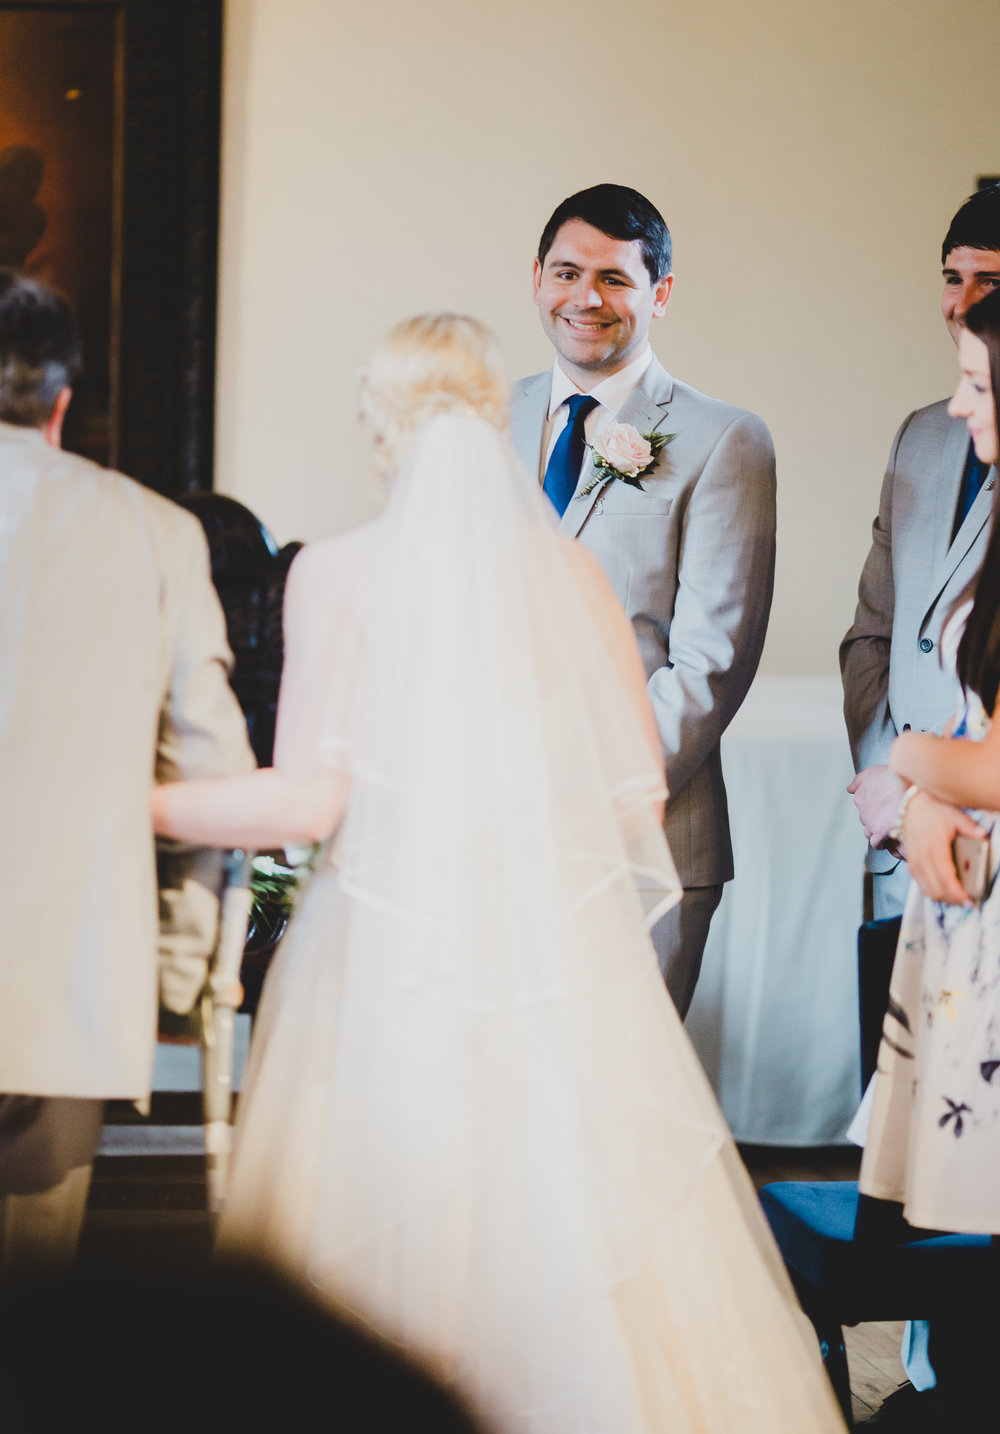 Big smiles from the groom as he watches his bride down the aisle. - preston wedding photography